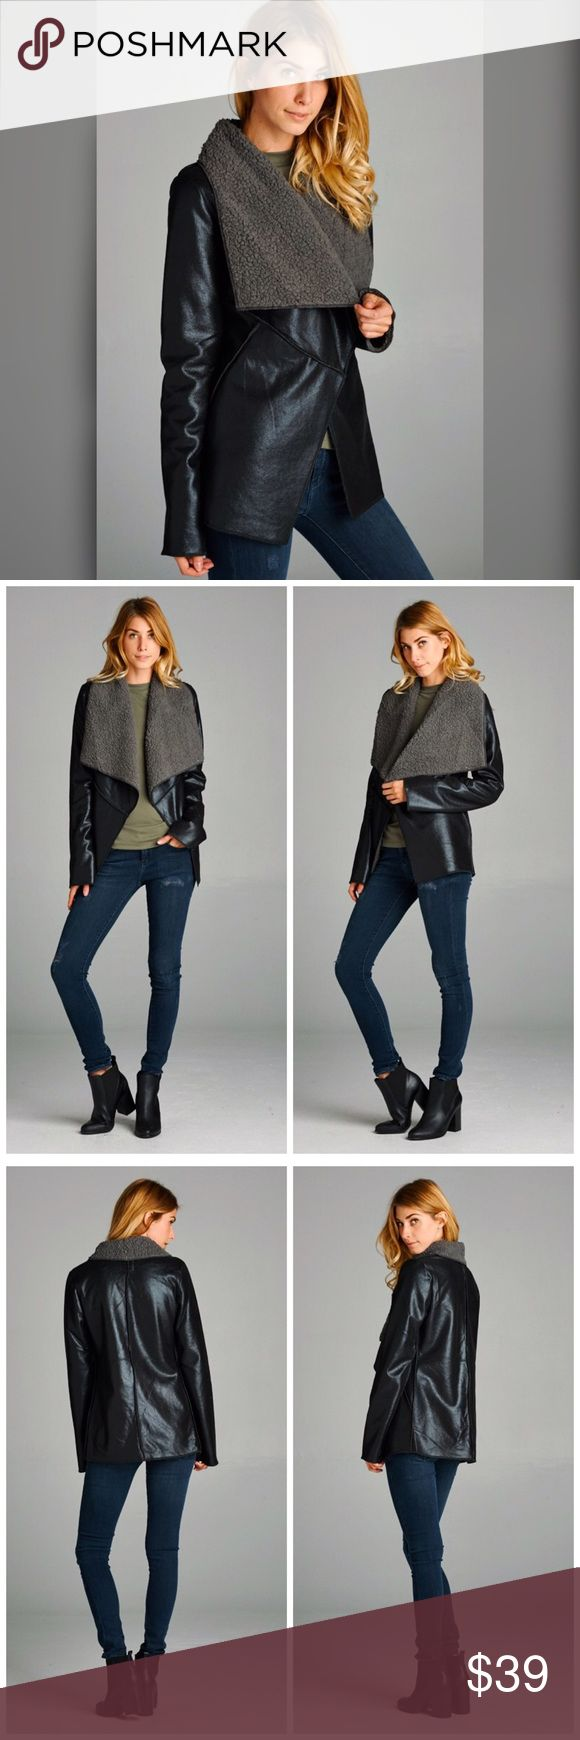 Faux Suede gray and black shearling coat! Semi-loose fit, long sleeve, open closure jacket. Lapel foldover. Sleeves cuffed. This jacket is made with medium weight faux suede fabric that is fully lined with a very soft and plush shearling. Fabric 100% Polyester Jackets & Coats